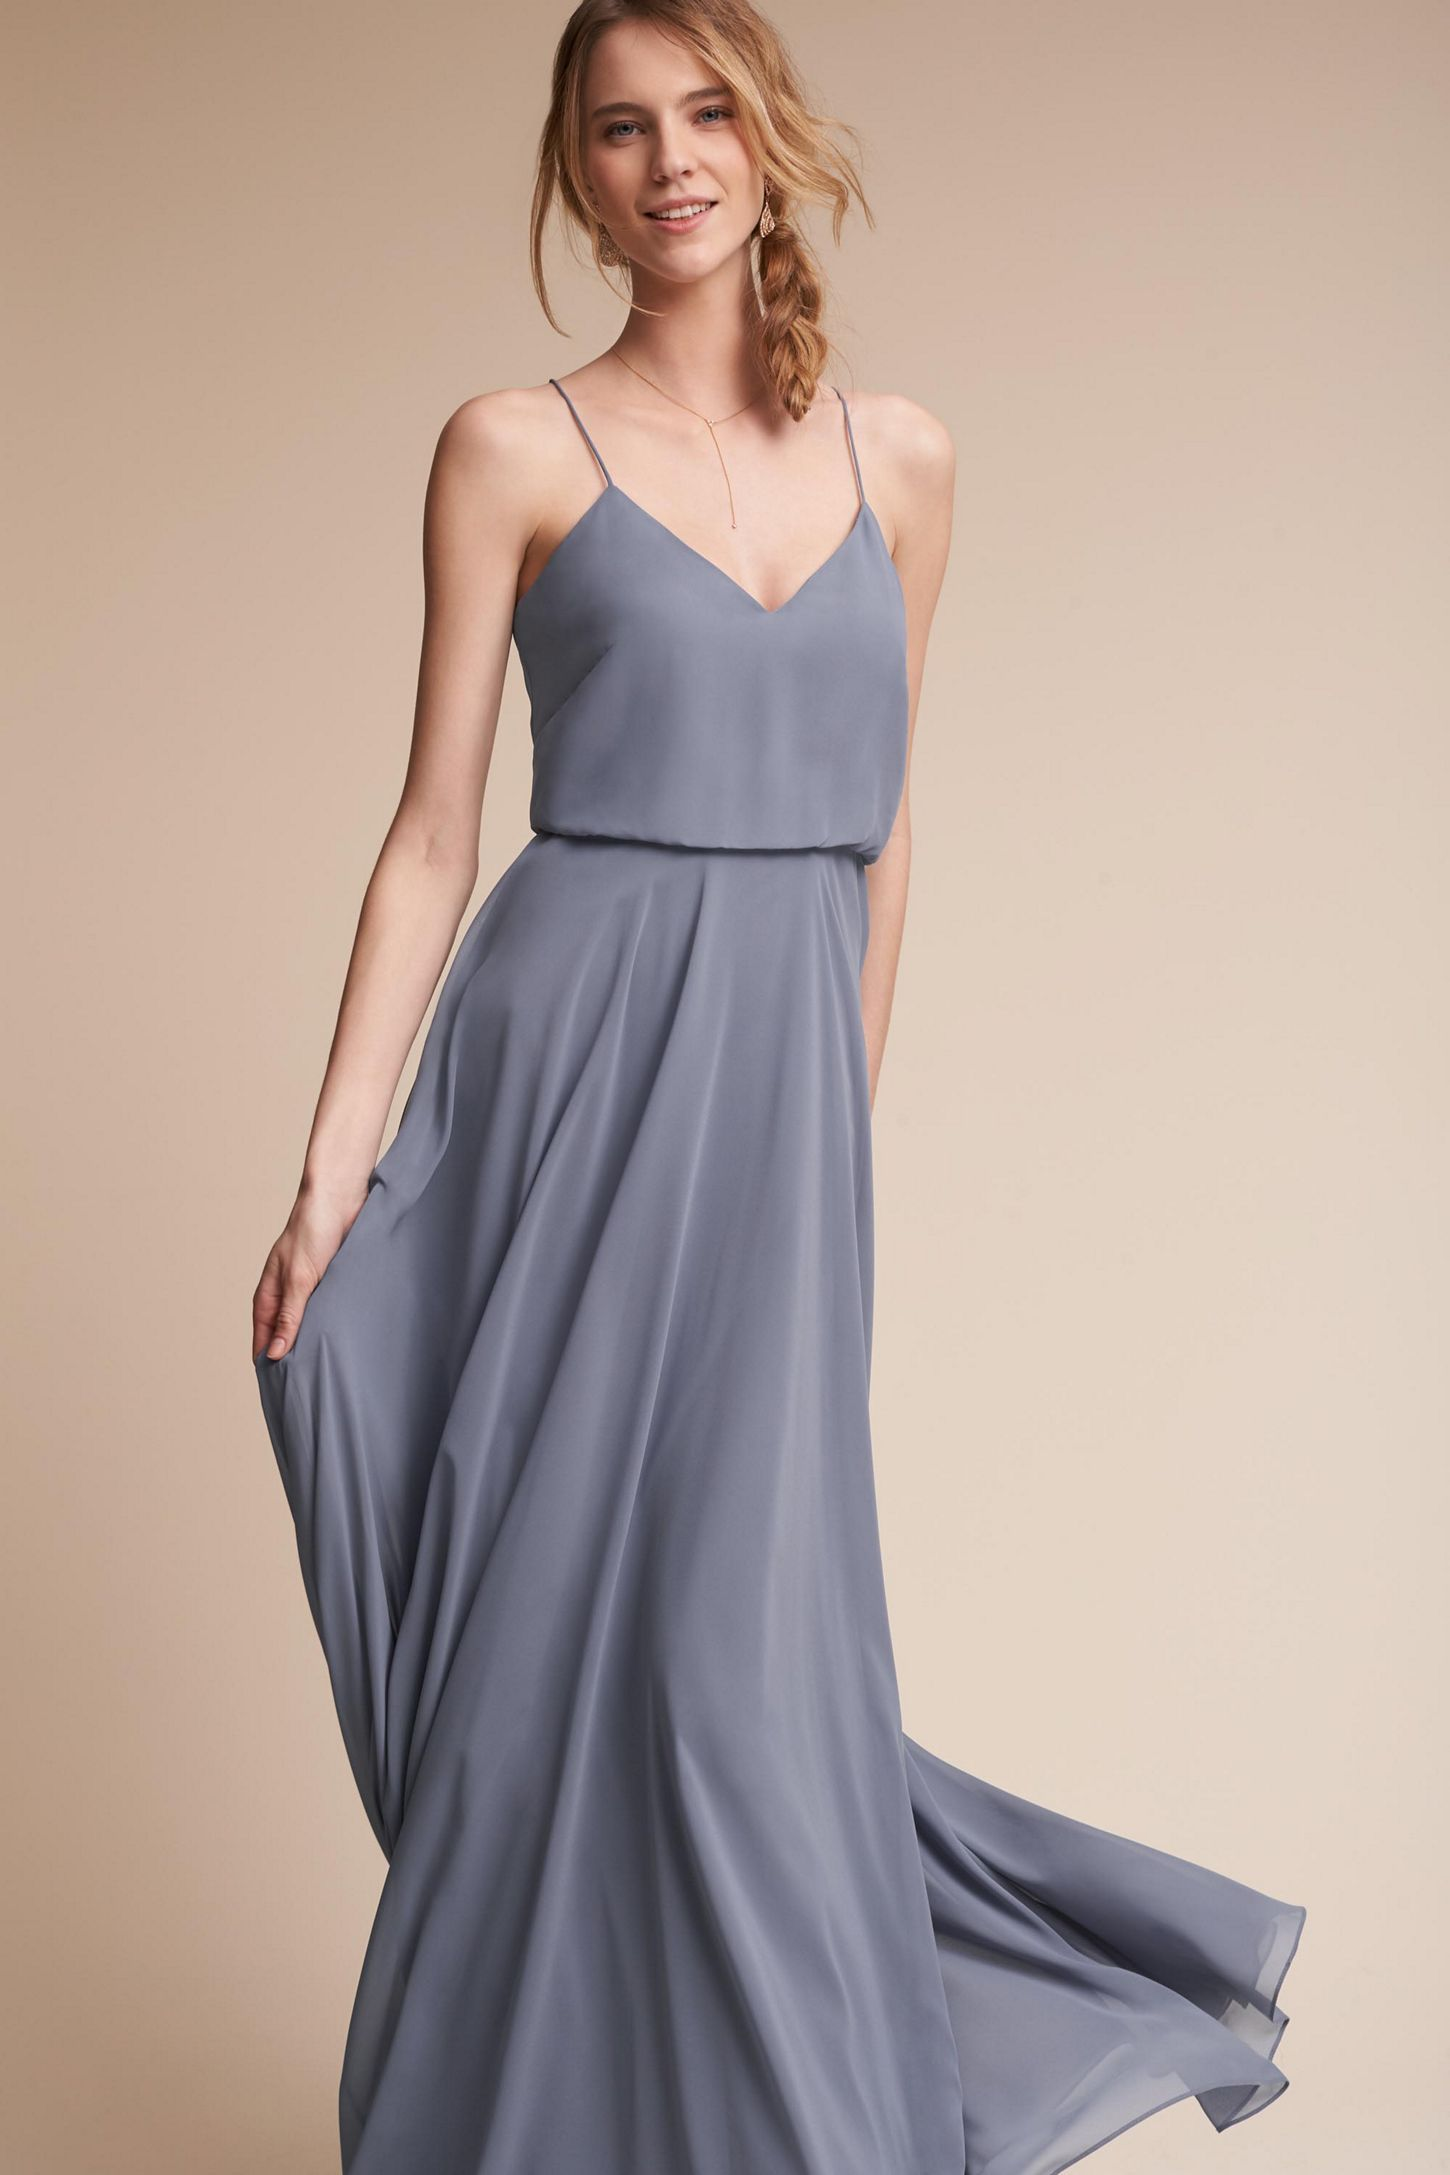 8c4d28d8a3550 Inesse Dress | Anthropologie